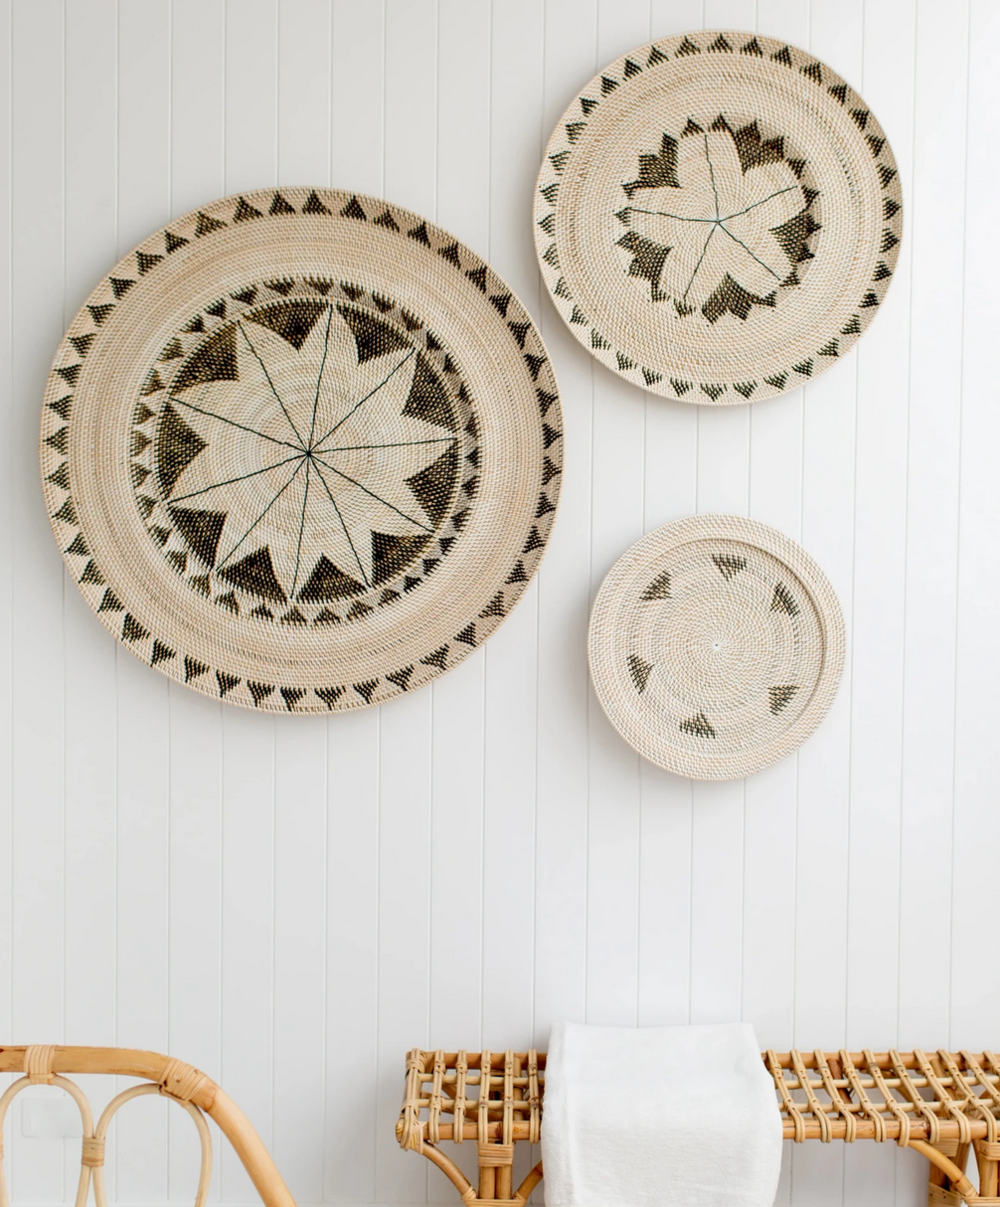 10 Tropical Decorating Ideas + Objects For The Home